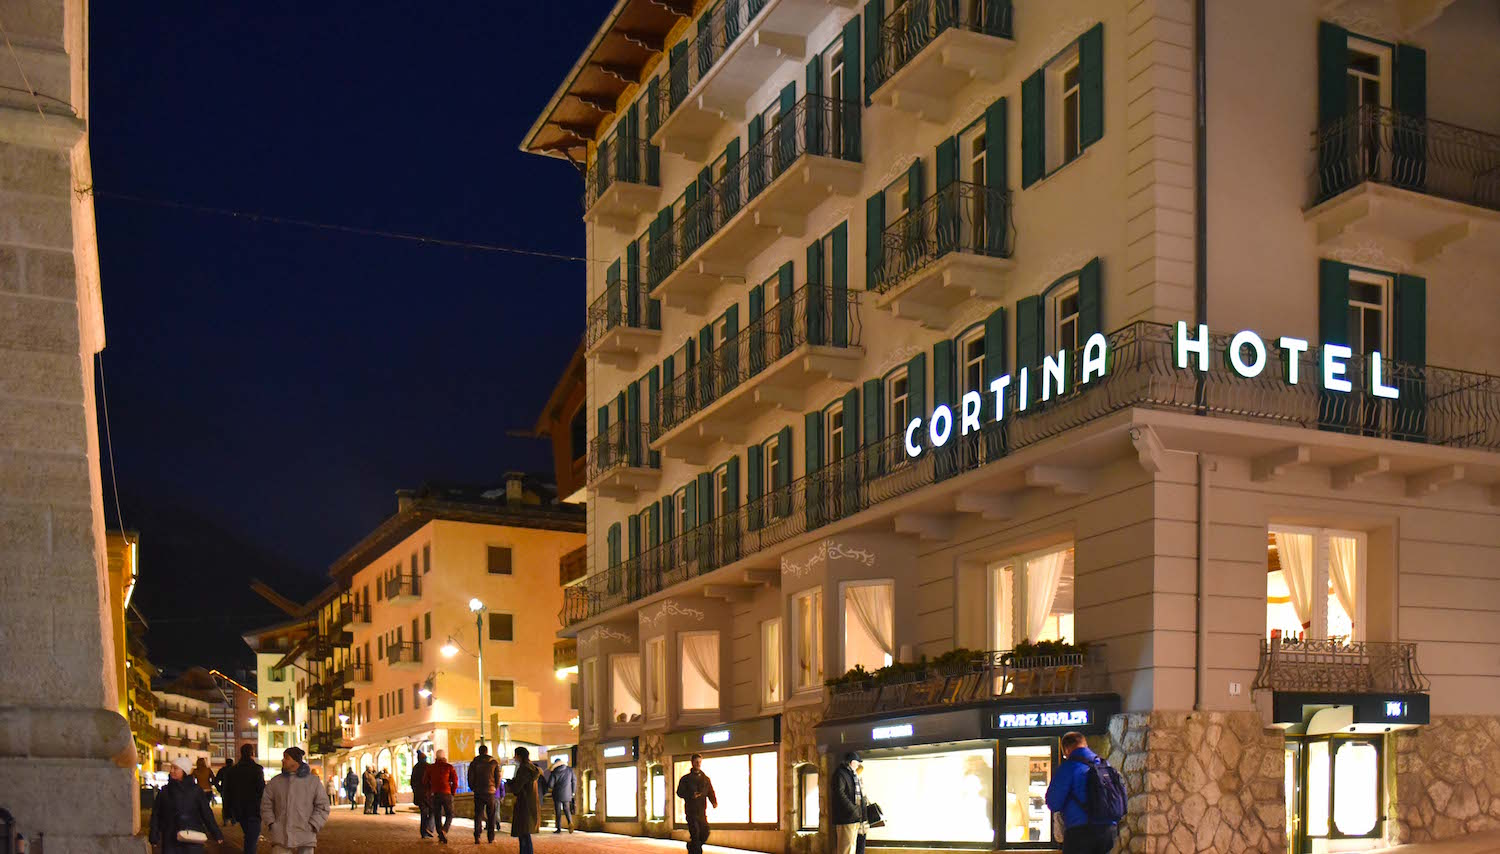 Cortina d'Ampezzo Hotel Cortina Dolomite Mountains